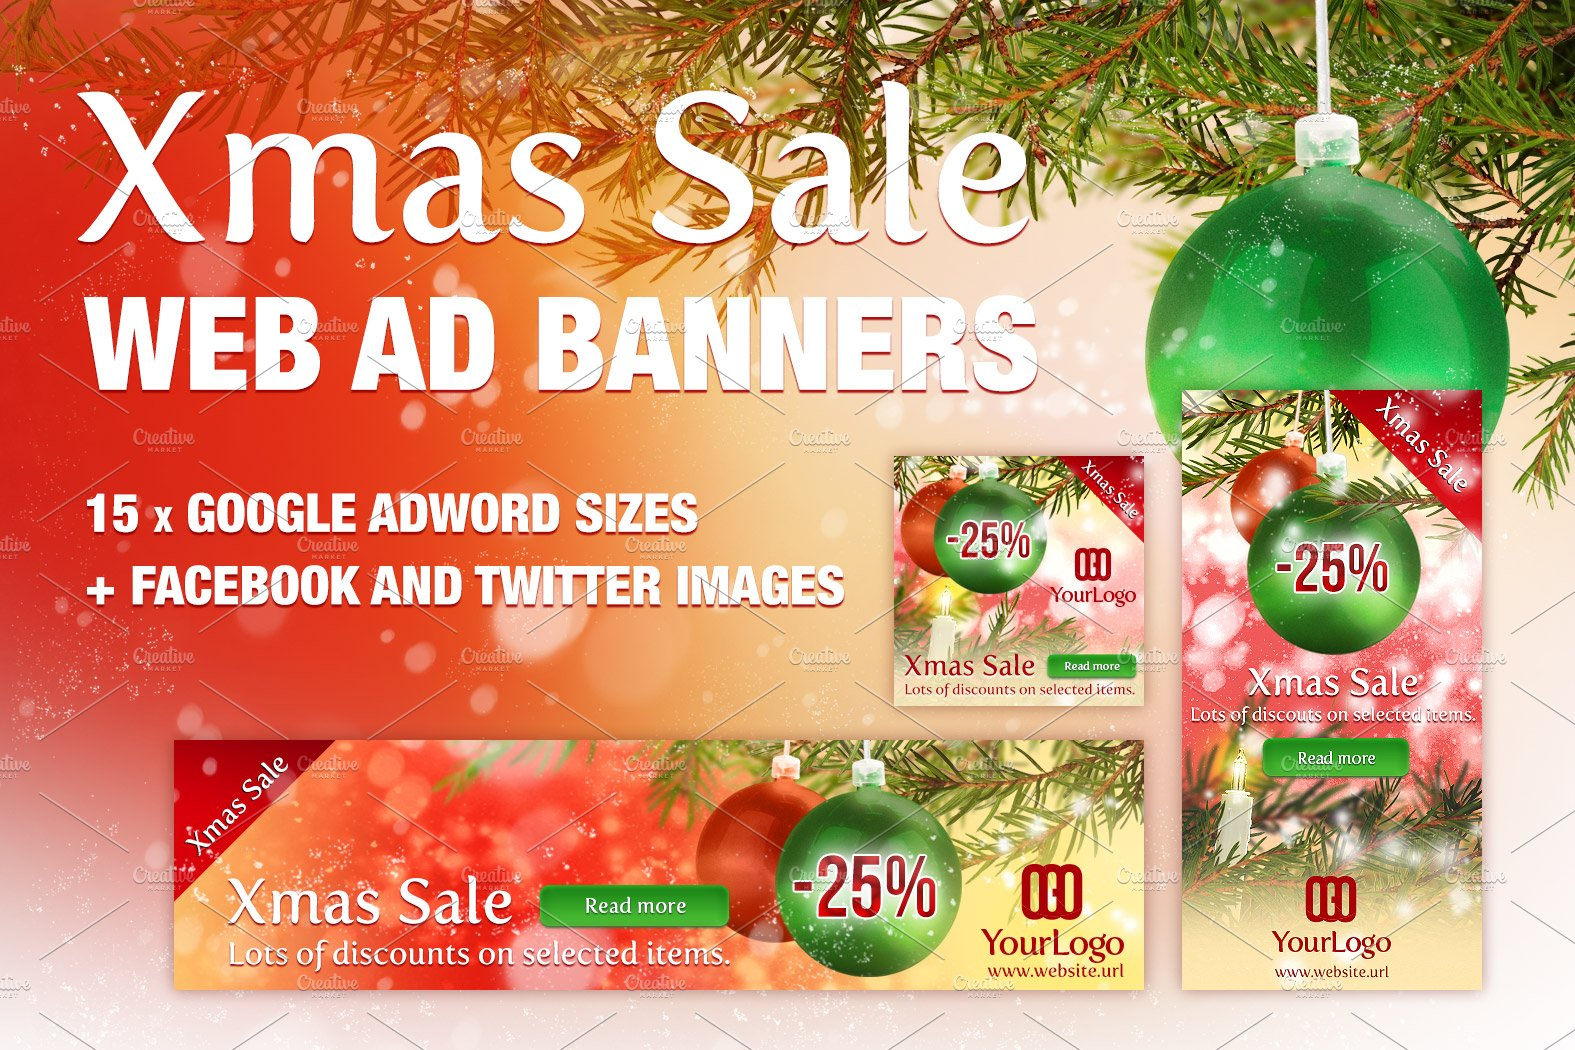 xmas ad banners for google adwords web elements creative market